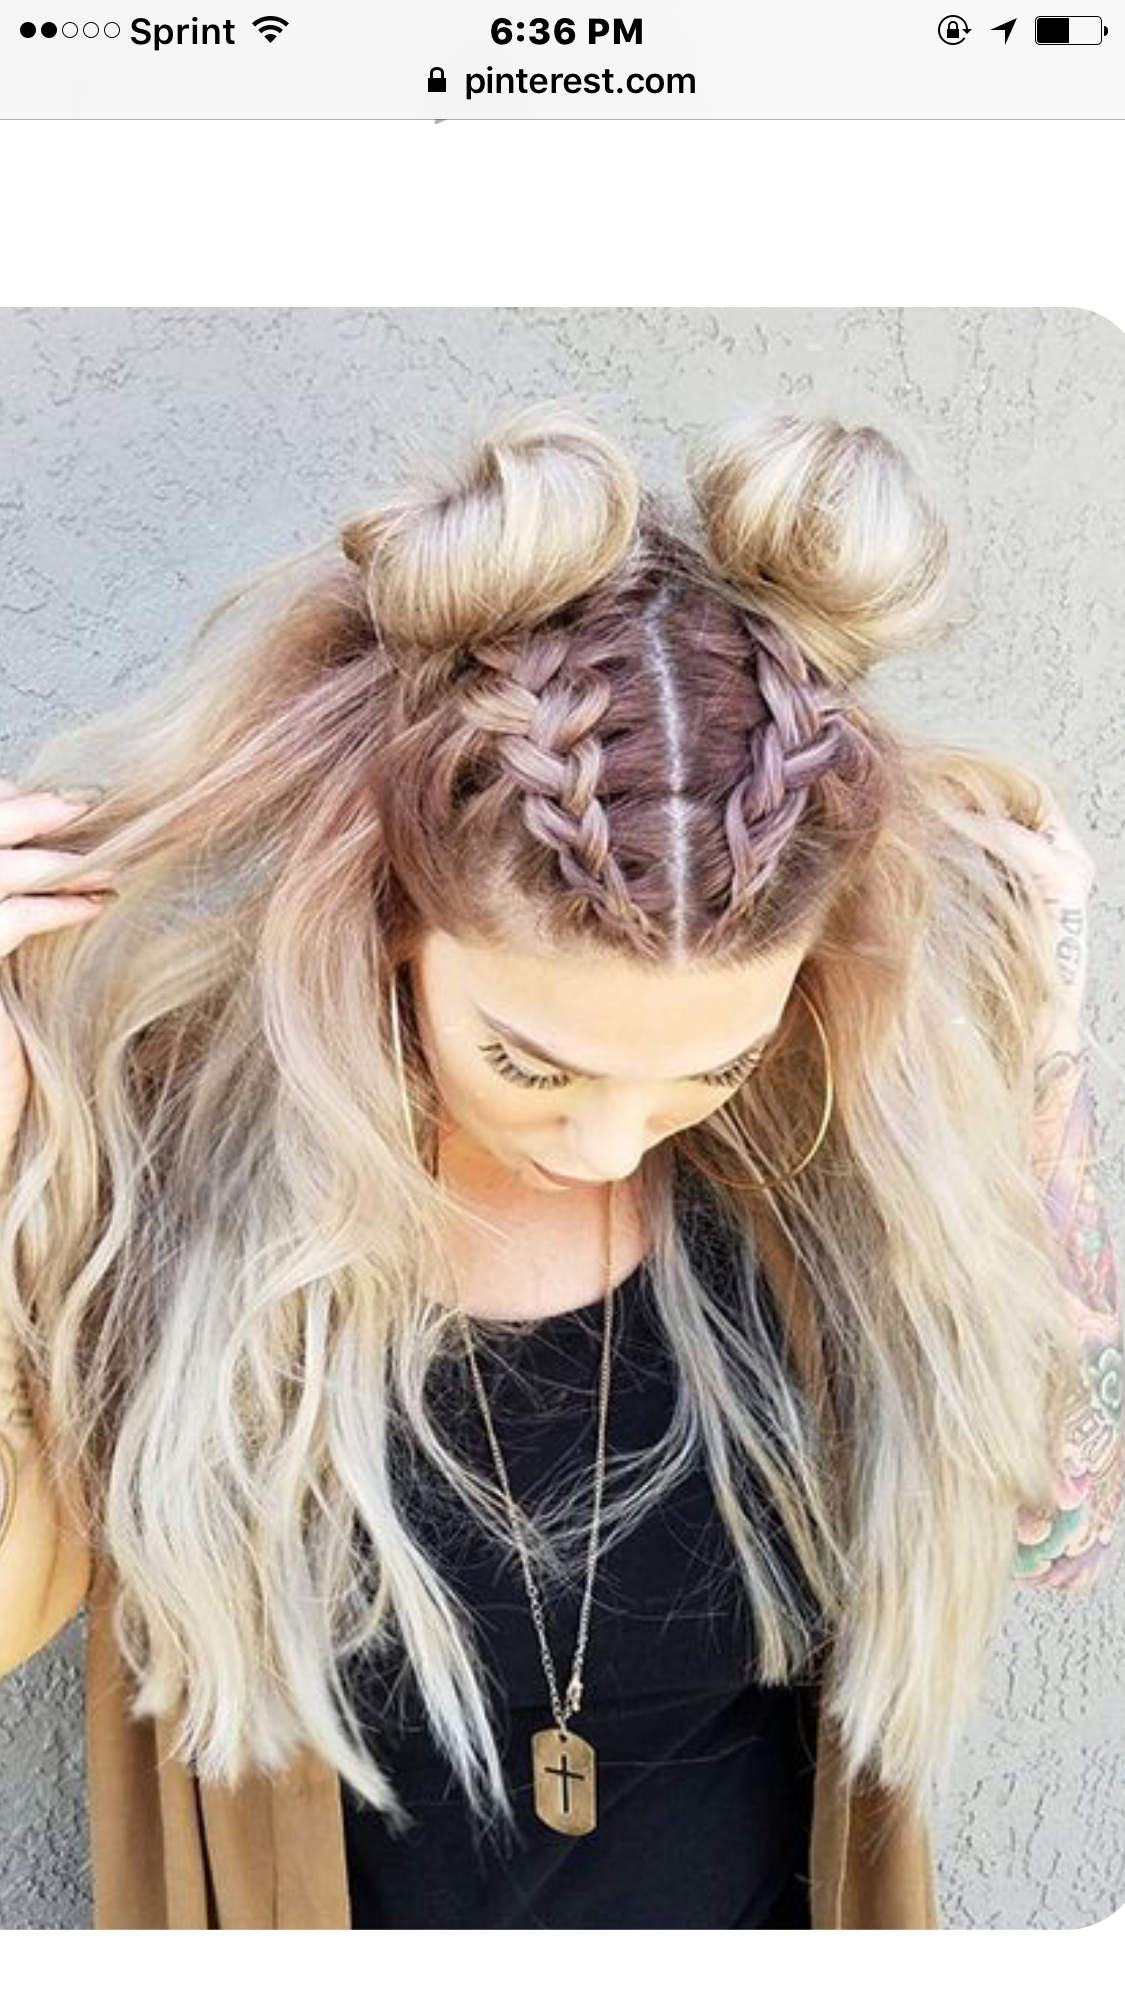 Cute Braided Buns Hair Do Cute Hair Hair Styles Long